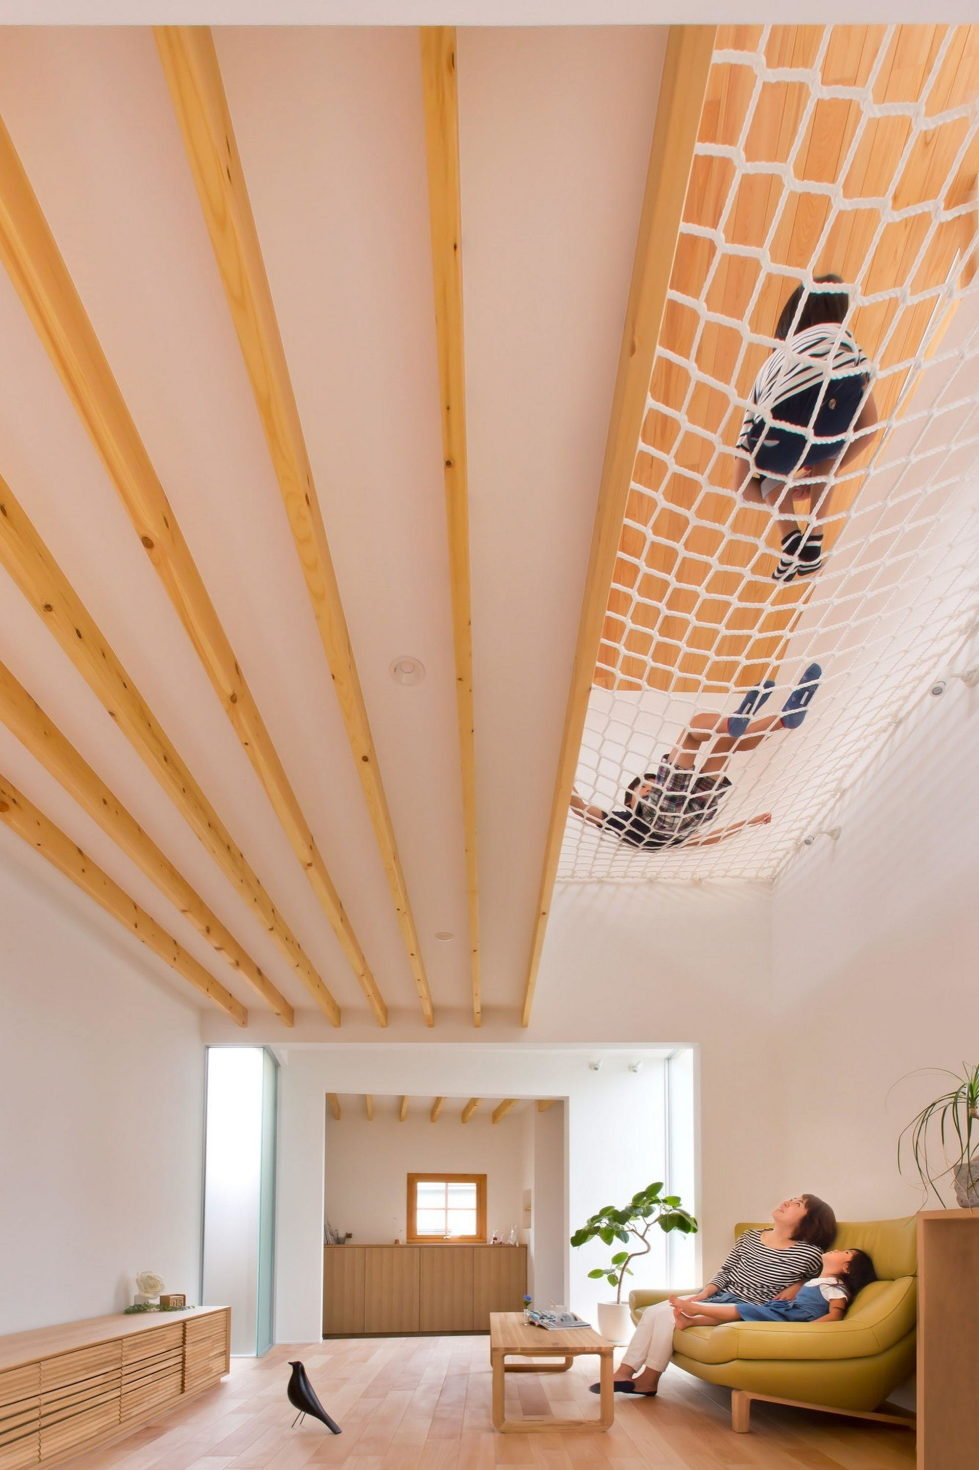 The House In Nipponese Minimalism In Kyoto By ALTS Design Office 8